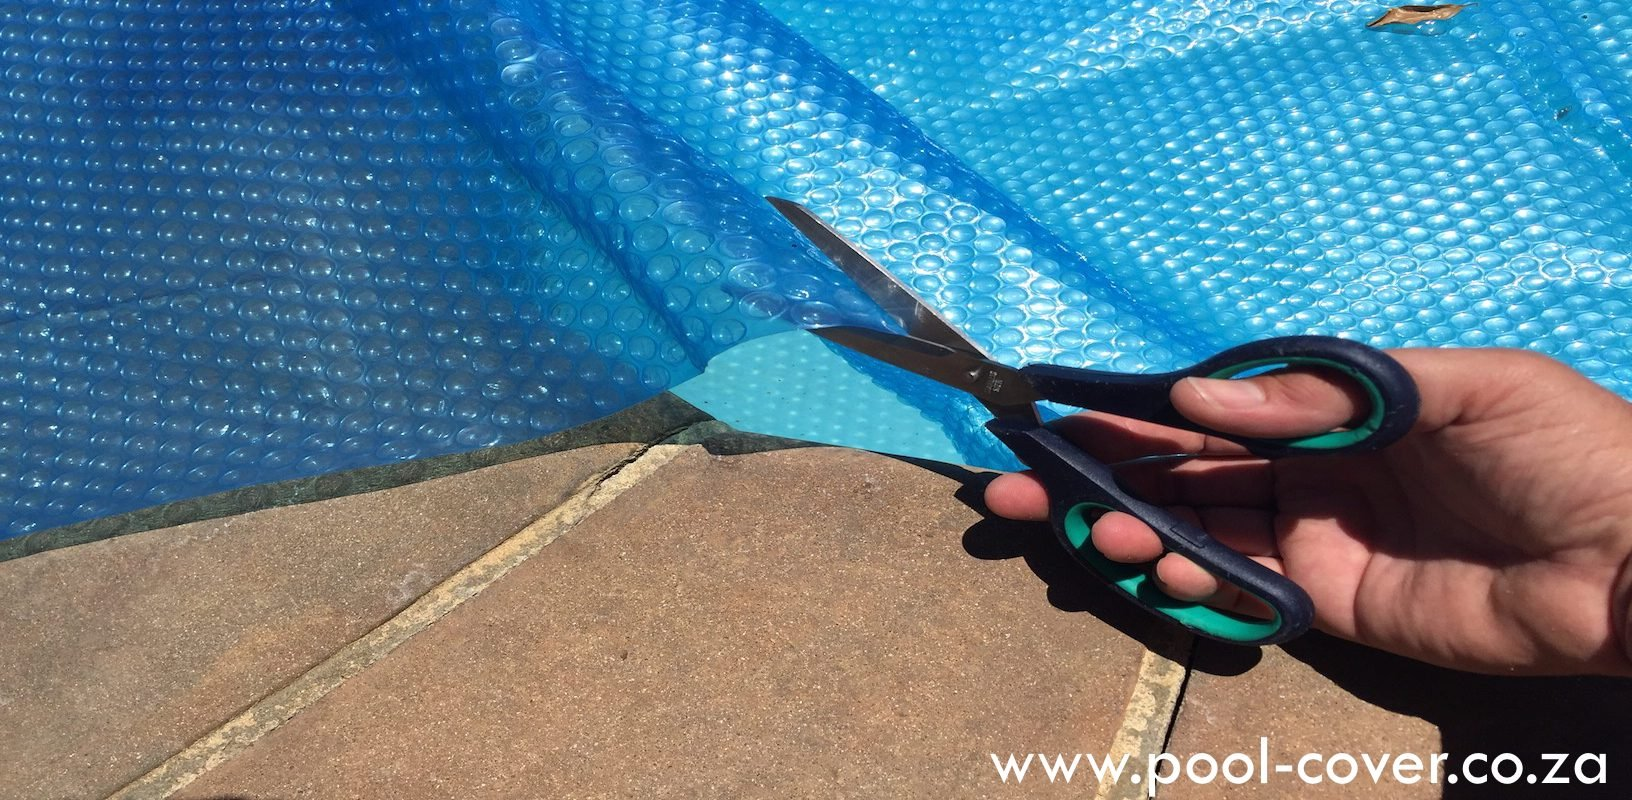 Trimming And Cutting Bubble Wrap Pool Cover 1 Swimming Pool Covers Cape Town Solar Pool Covers